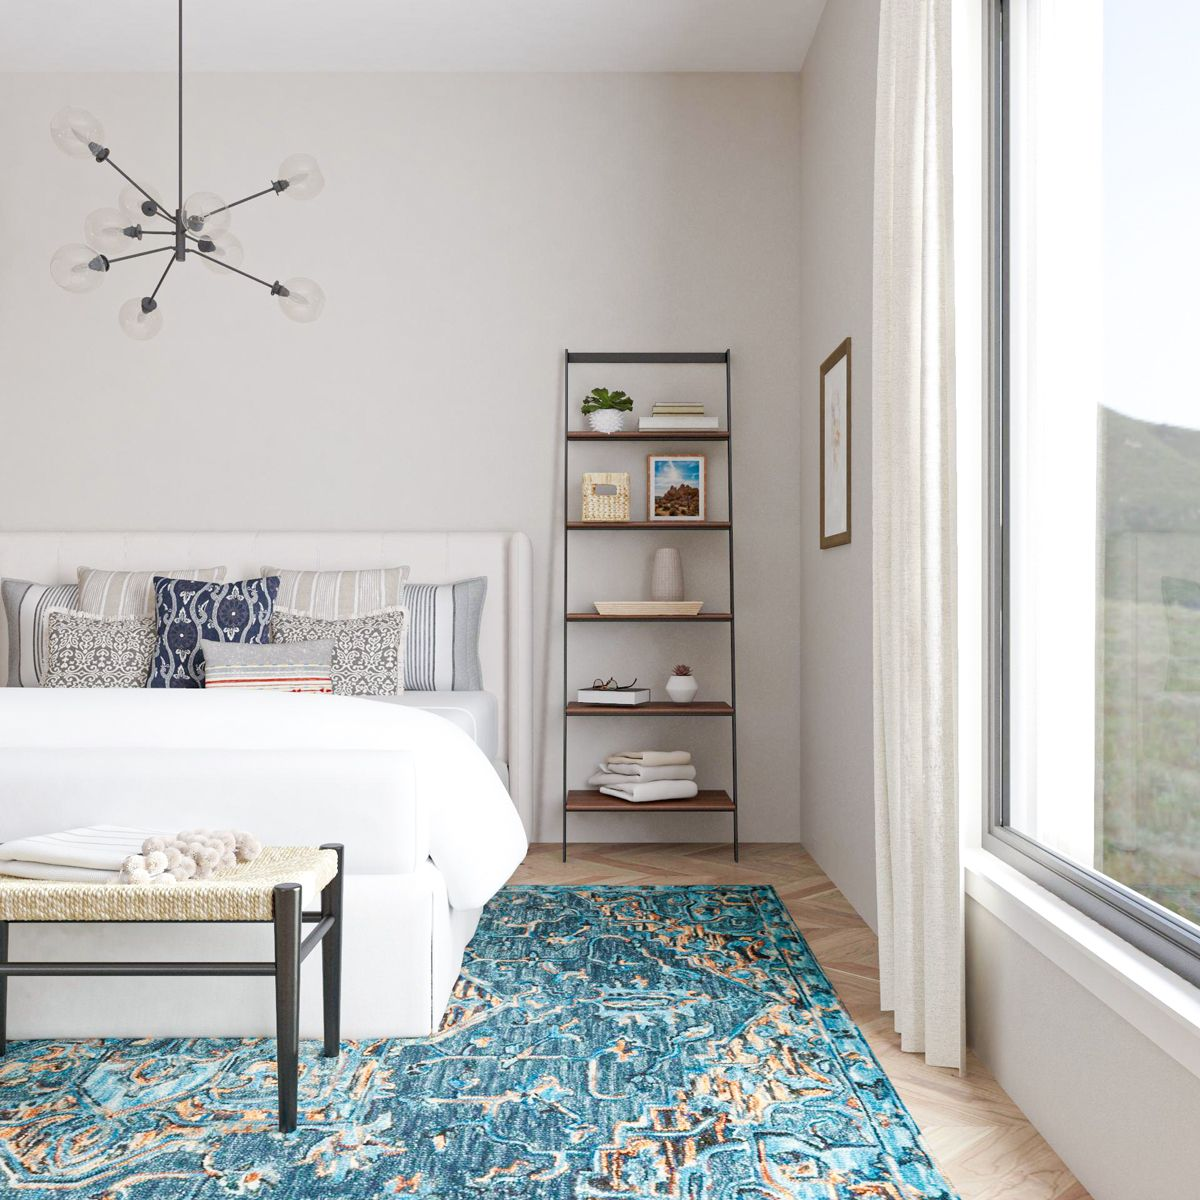 Small Bedroom Design 10 Tips To Help You Make The Most Of Your Space Small Apartment Furniture Transitional Style Bedroom Storage Furniture Bedroom Turquoise floor bedroom designs